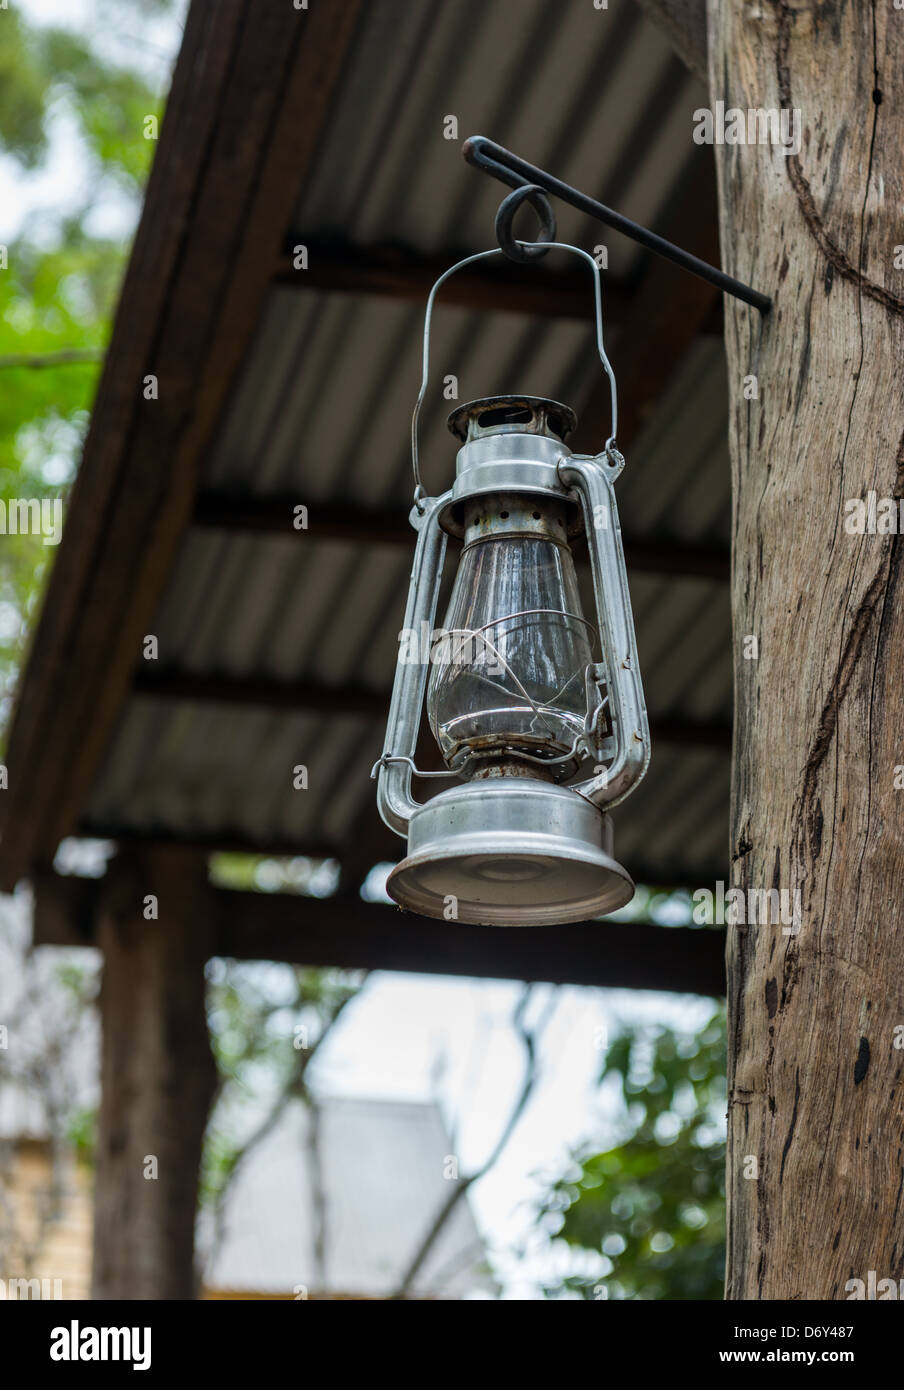 Old style lantern hanging from tree. - Stock Image